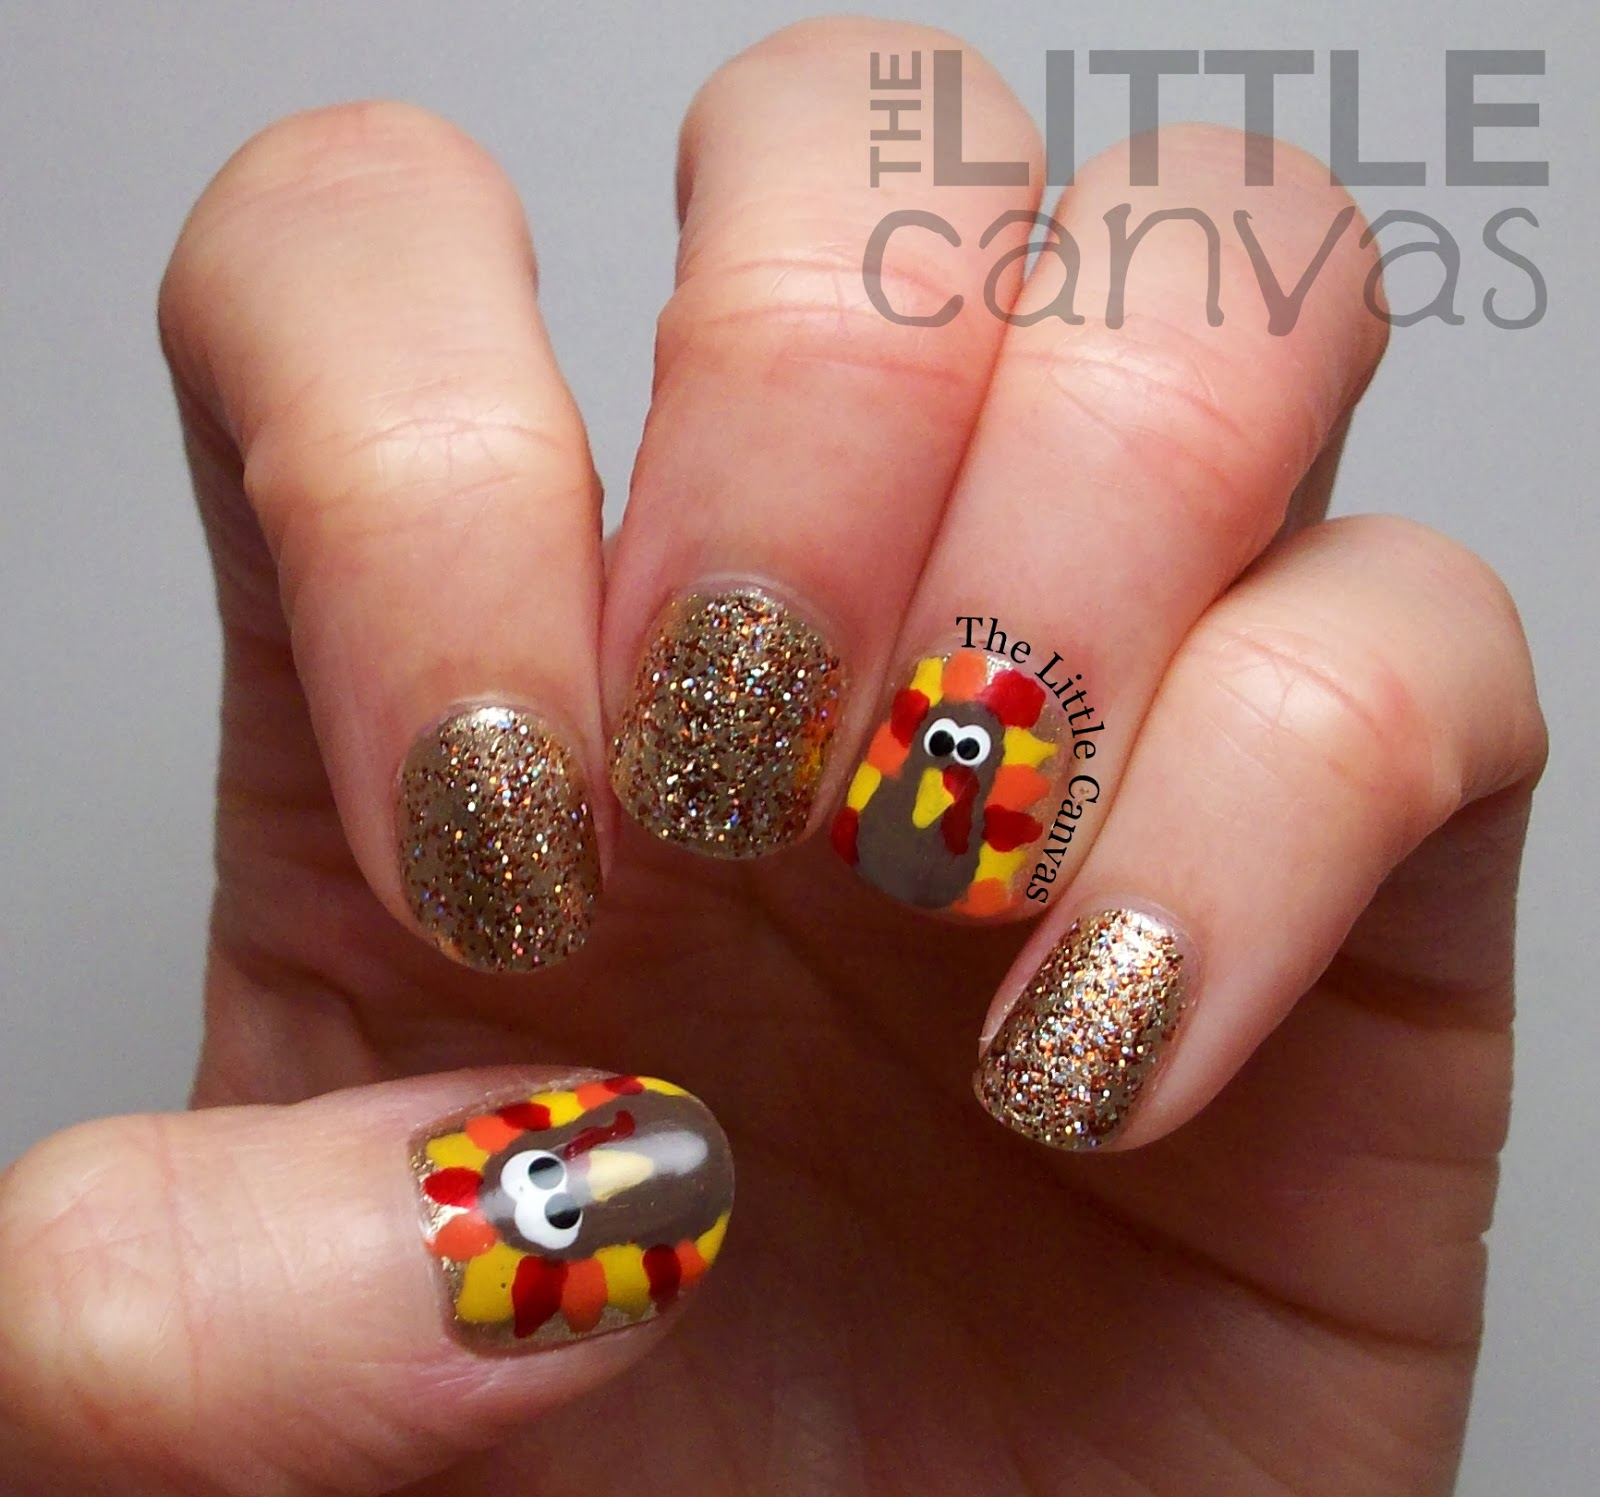 Happy Thanksgiving Turkey Nails The Little Canvas